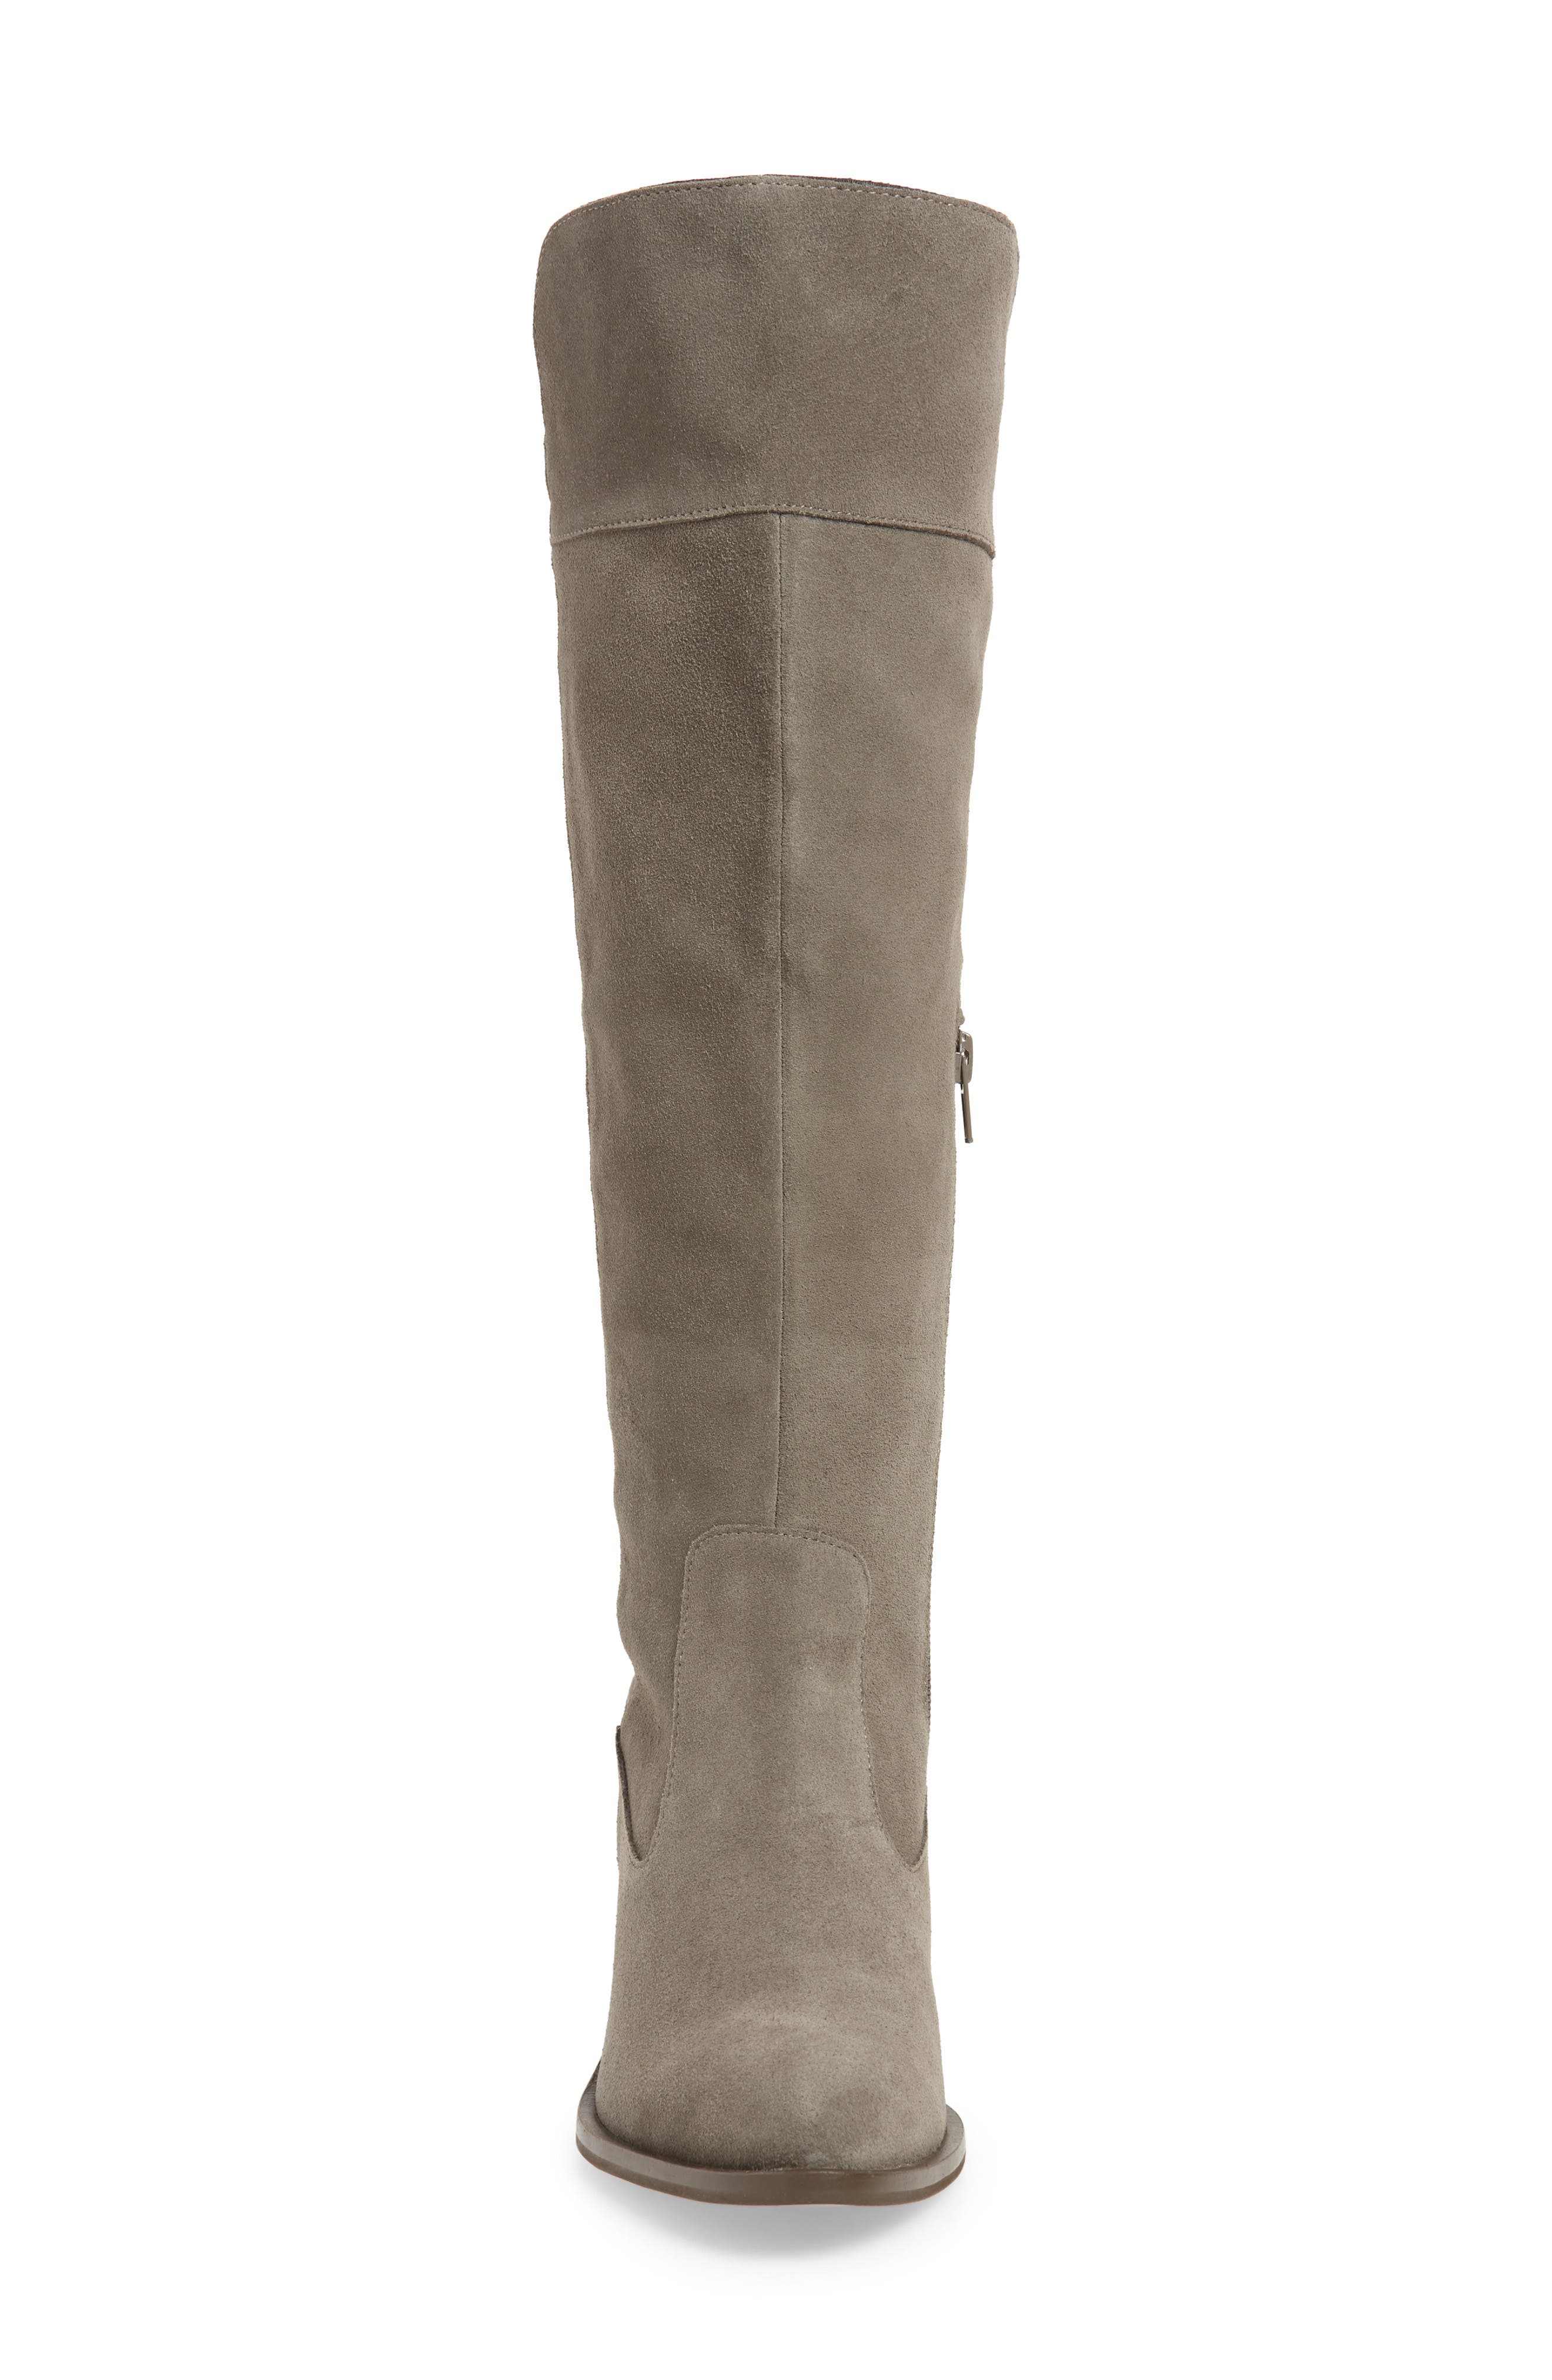 SOLE SOCIETY,                             Noamie Knee High Boot,                             Alternate thumbnail 4, color,                             LONDON RAIN SUEDE